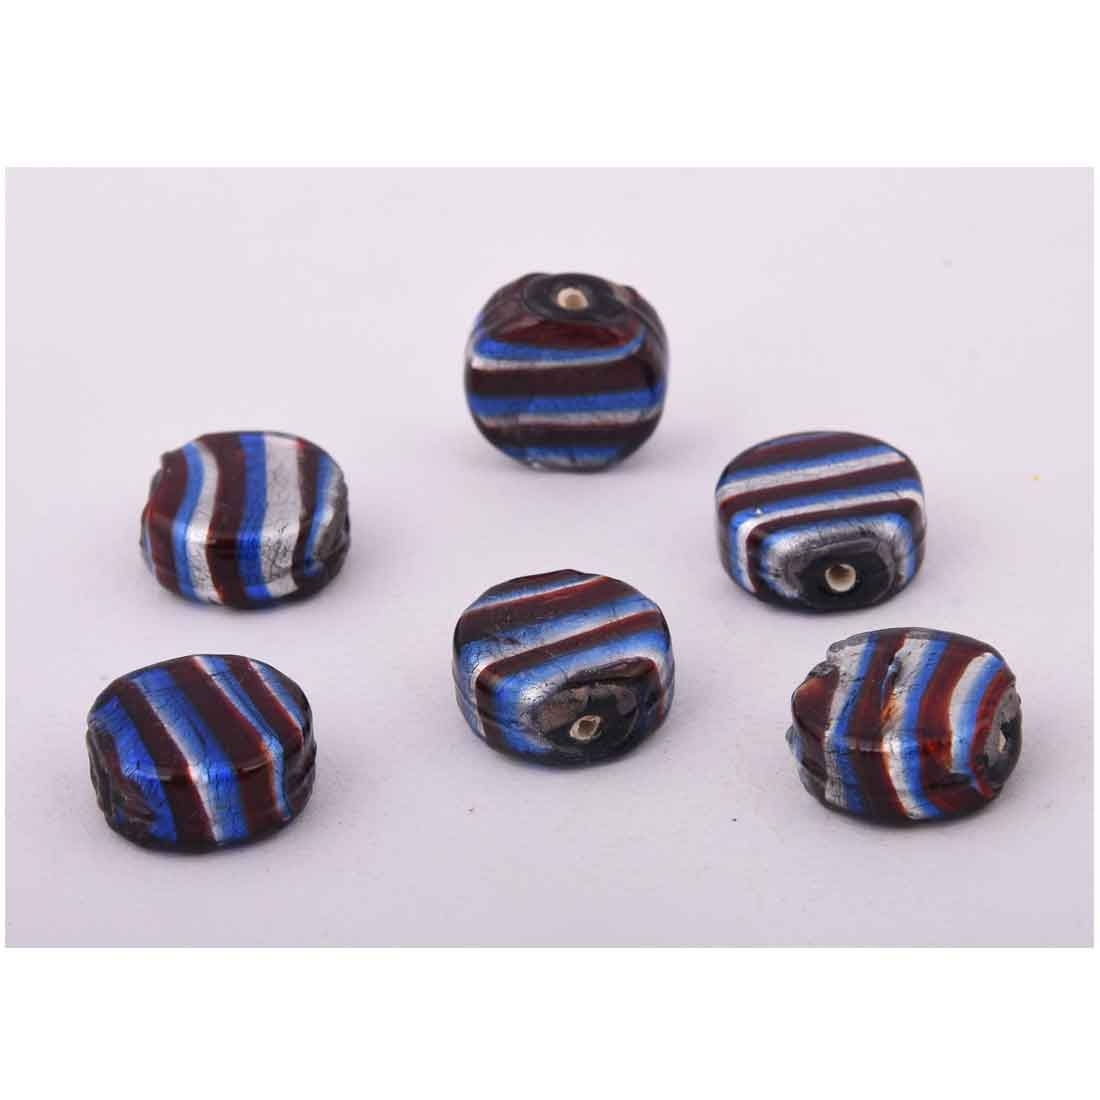 Beads India 1700079 Lampwork Handcrafted Glass Beads/Discounts Above 500 pcs